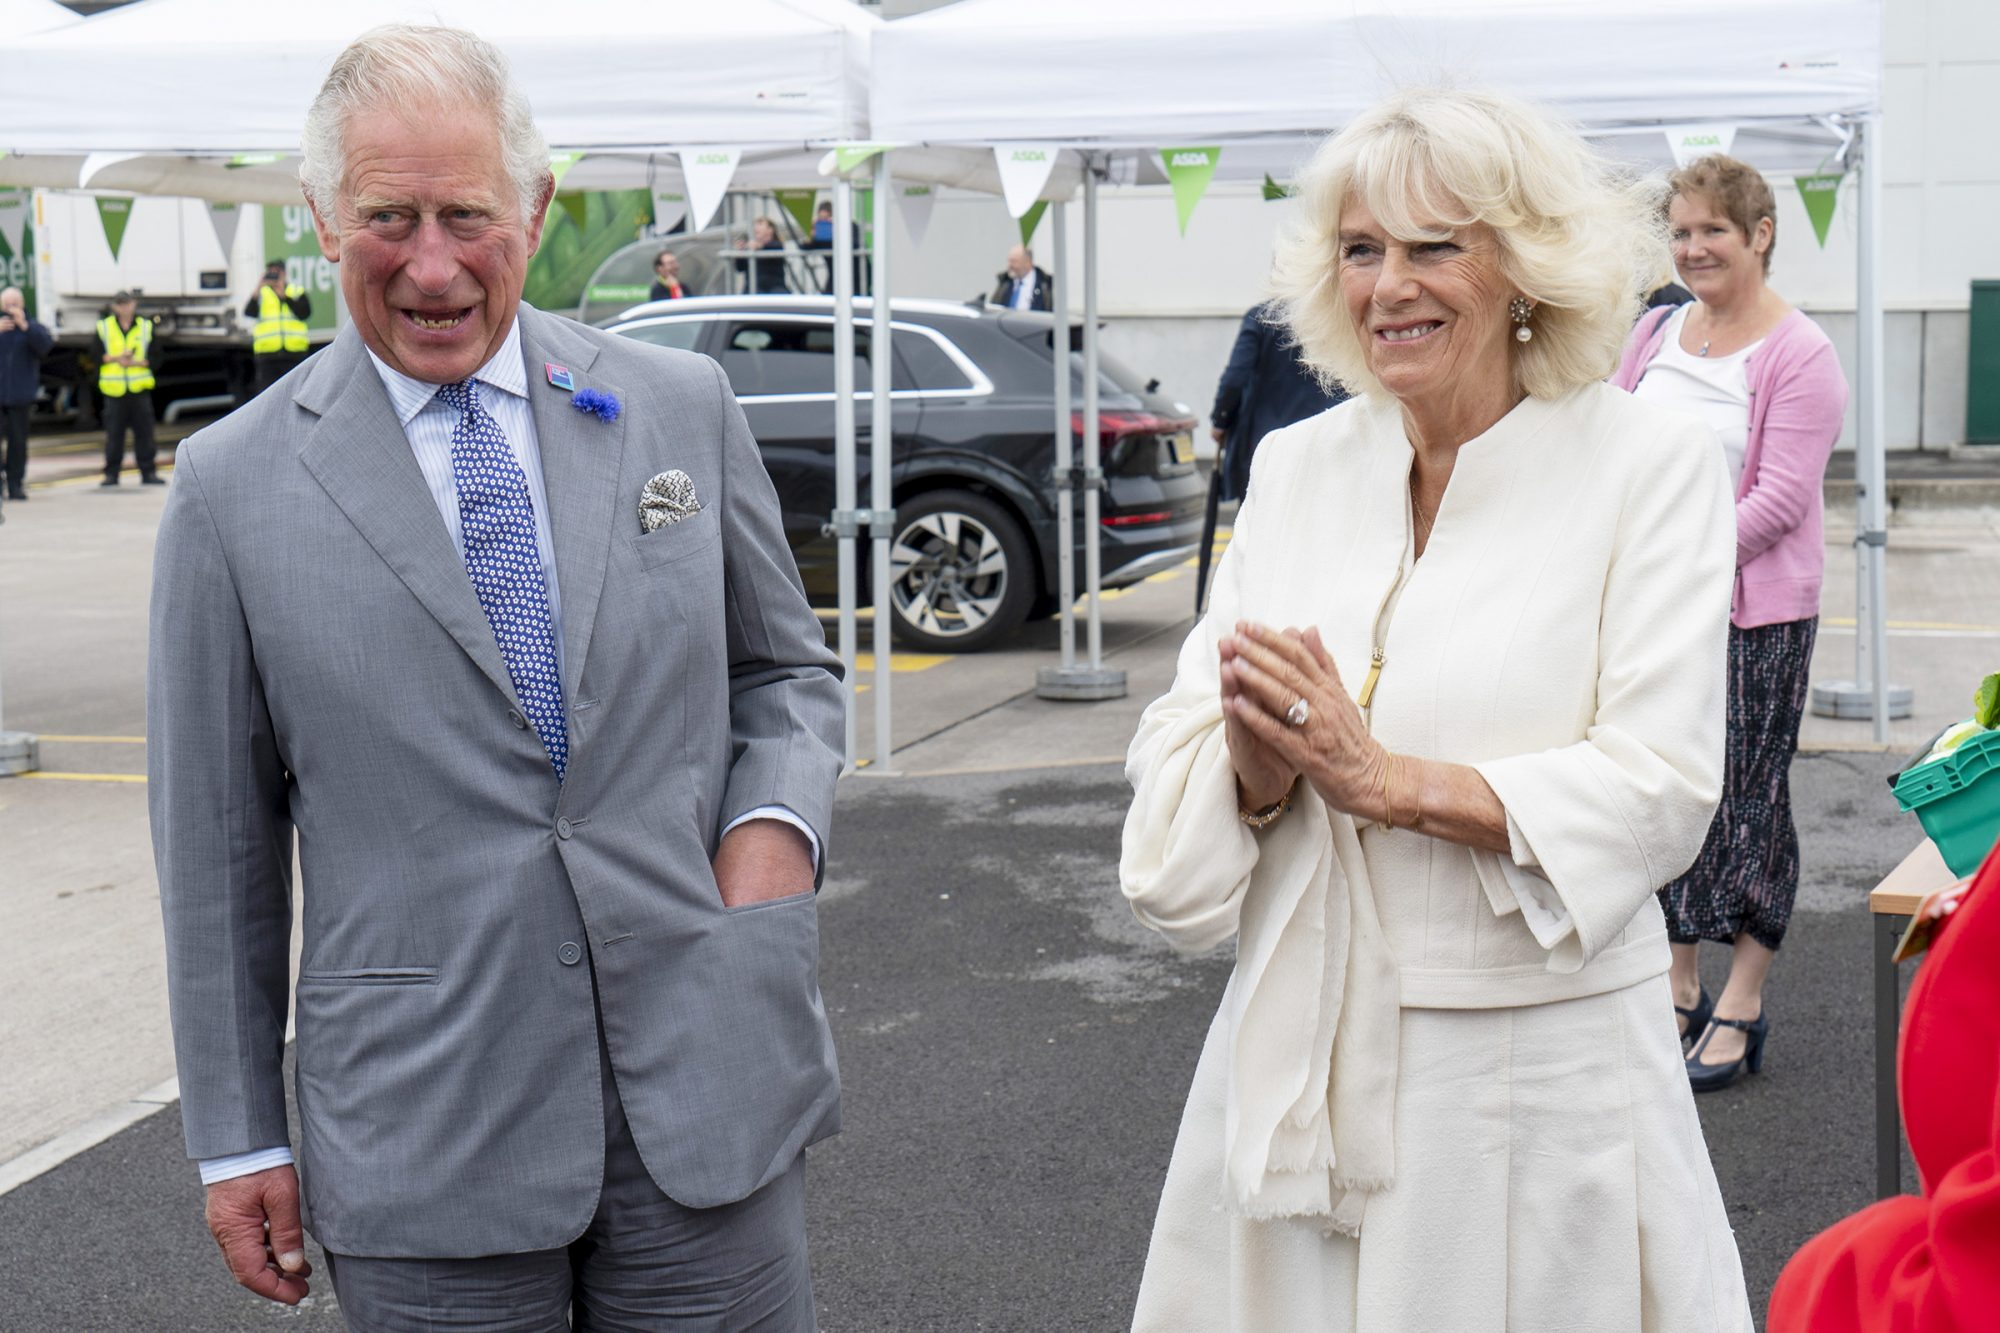 Prince Charles, President of Business in the Community, visits an Asda Distribution Centre to thank staff who have kept the country's vital food supplies moving throughout the coronavirus pandemic. Prince Charles and Camilla Duchess of Cornwall visit to Avonmouth